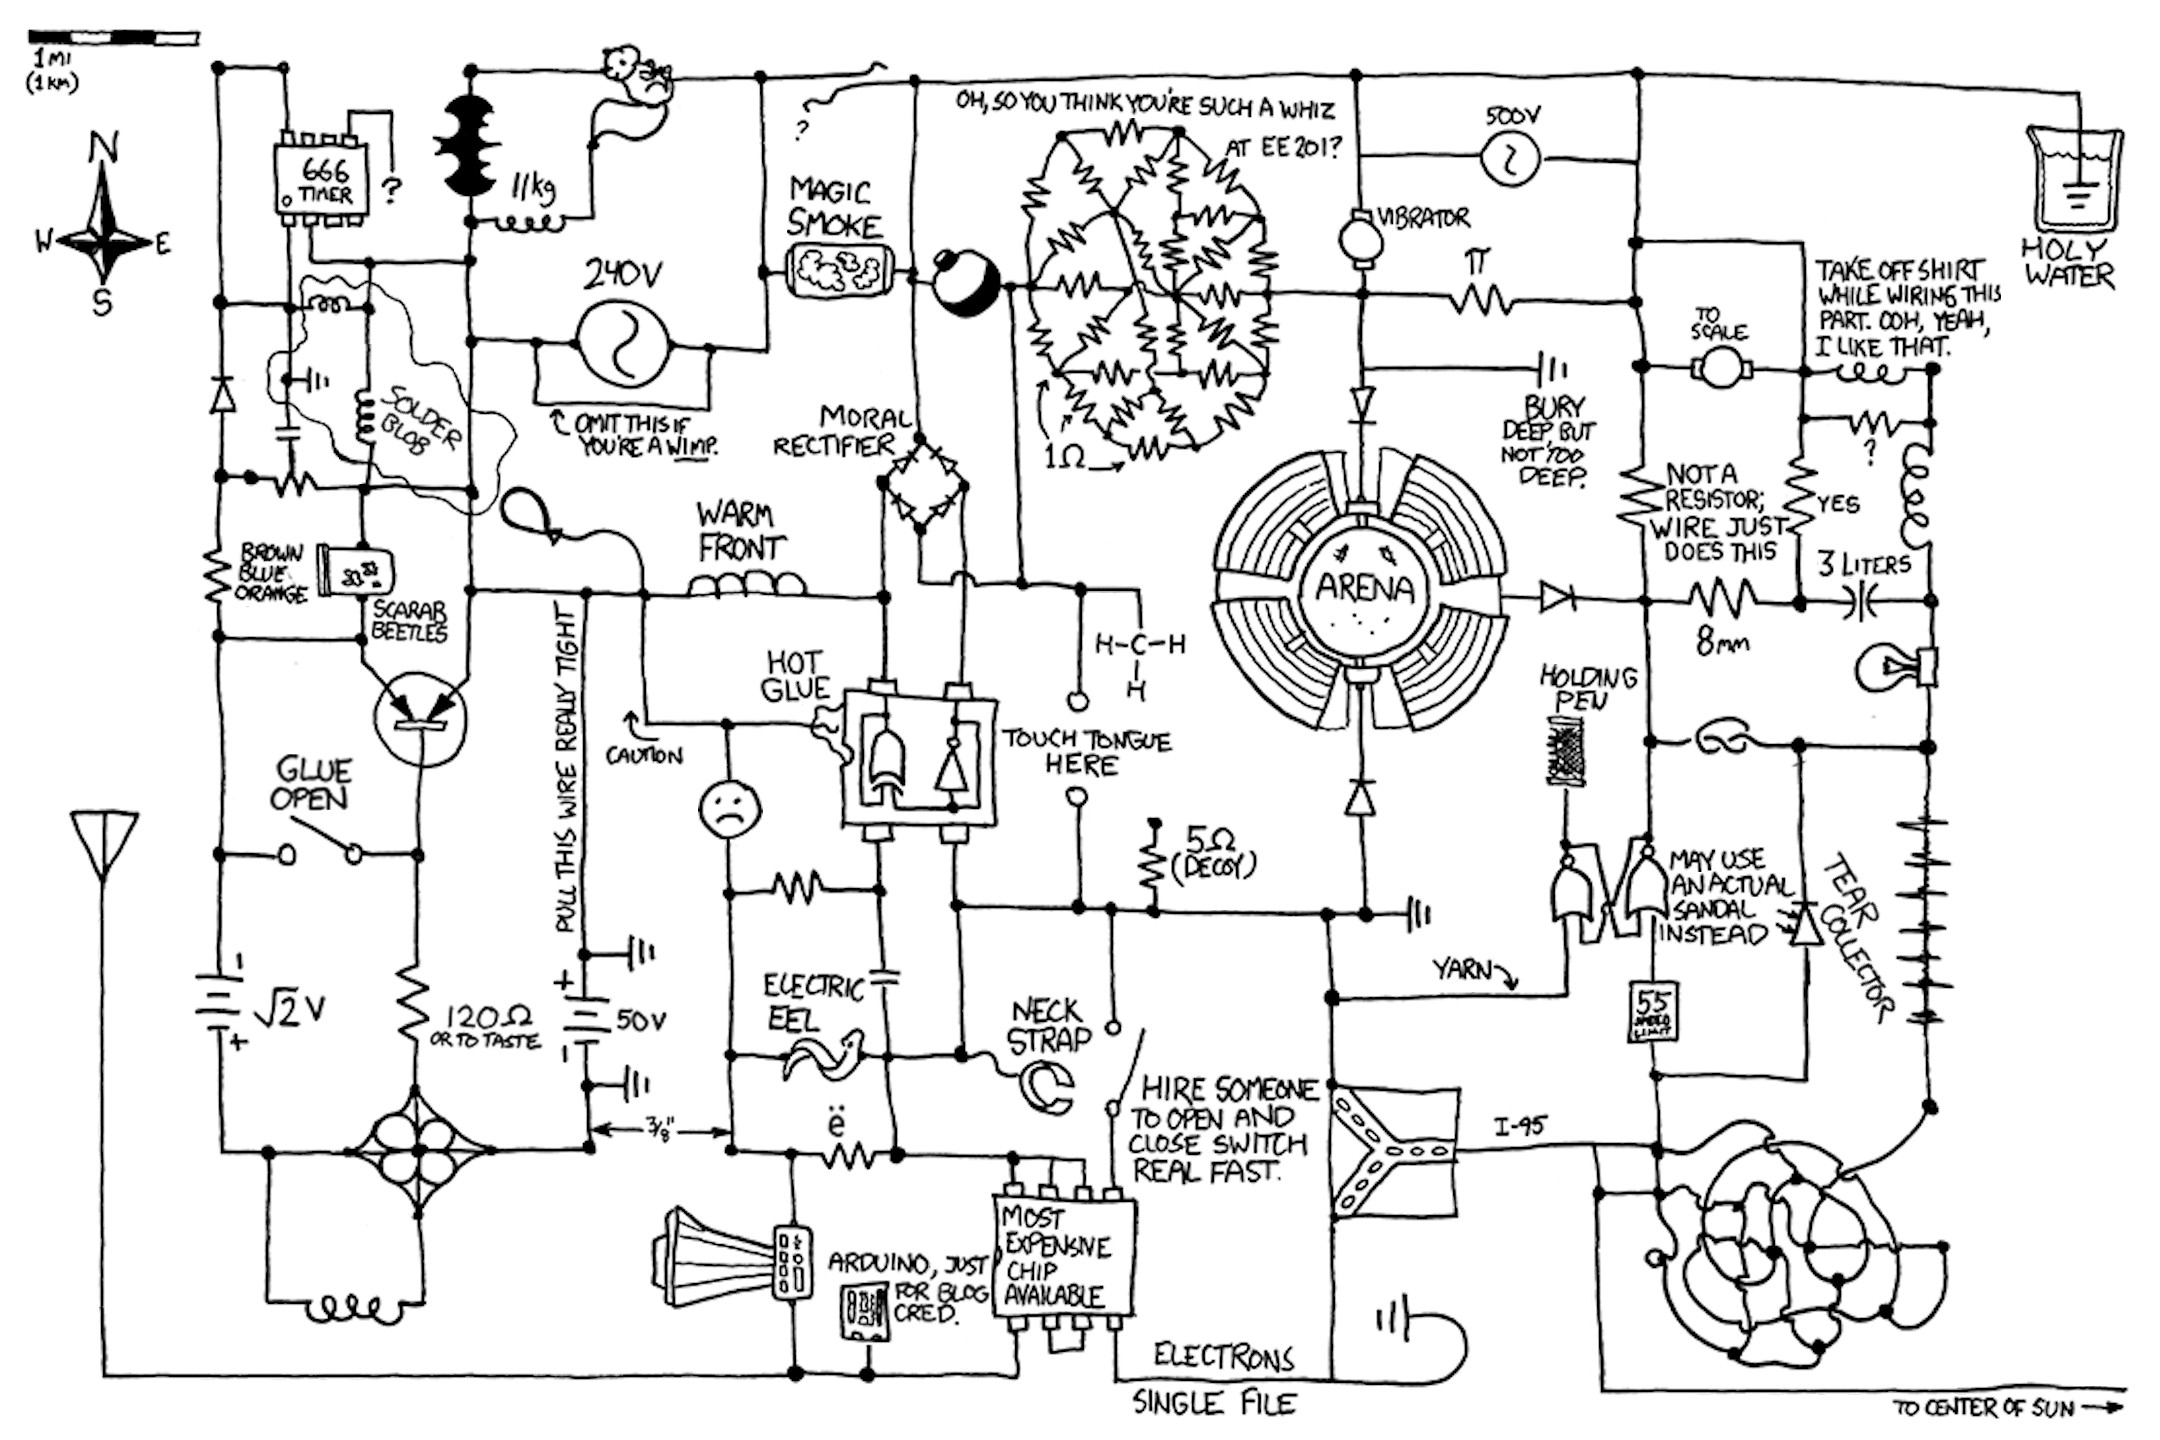 I rotated all of the text in Circuit Diagram xkcd 730 so it can 2160x1440